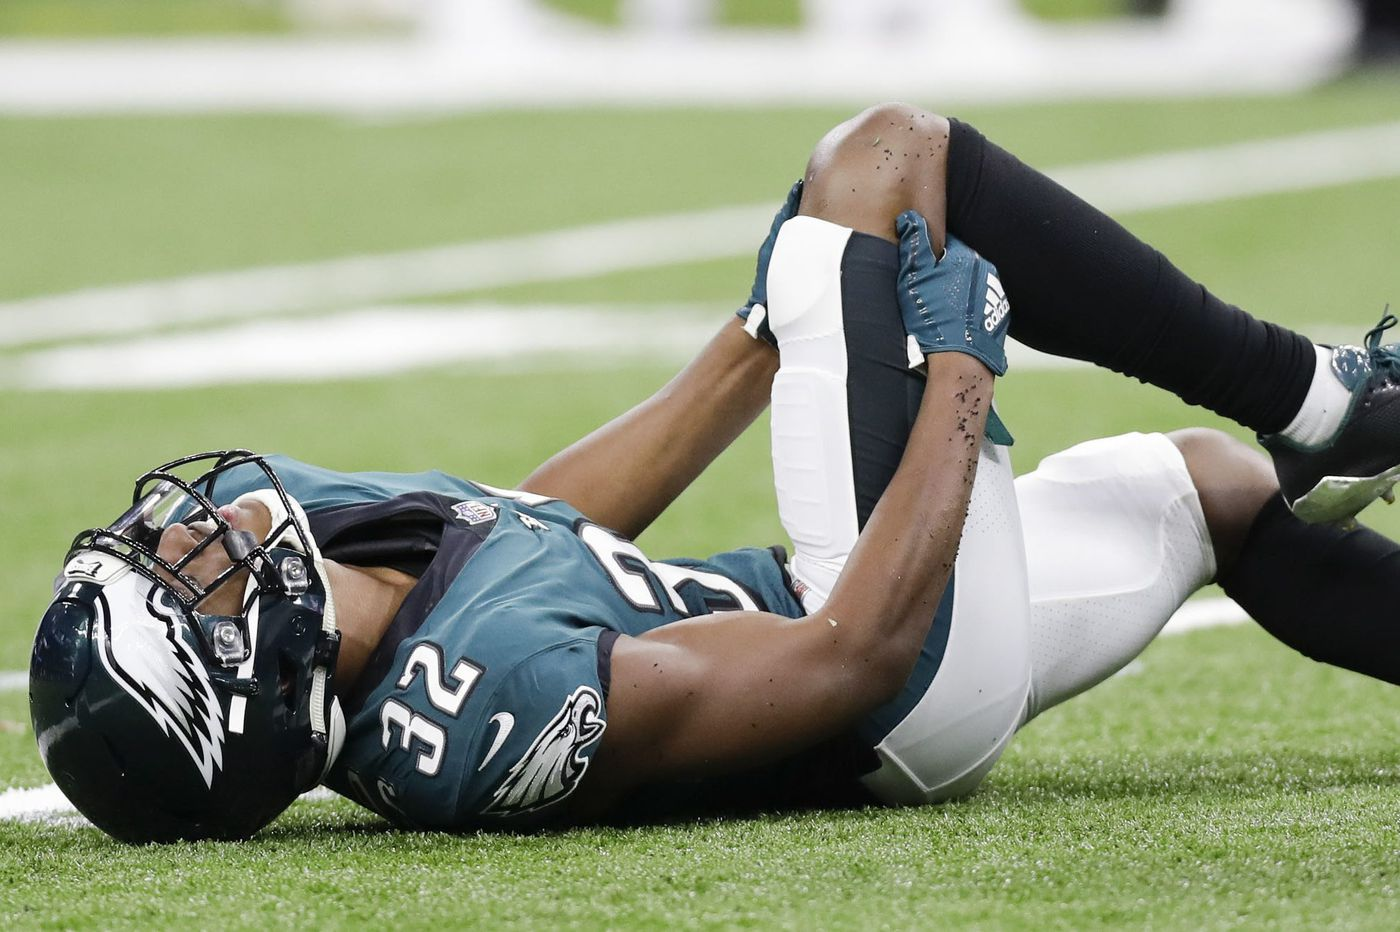 Sidney Jones, Rasul Douglas, Avonte Maddox go down; injuries in Eagles secondary are primary concern